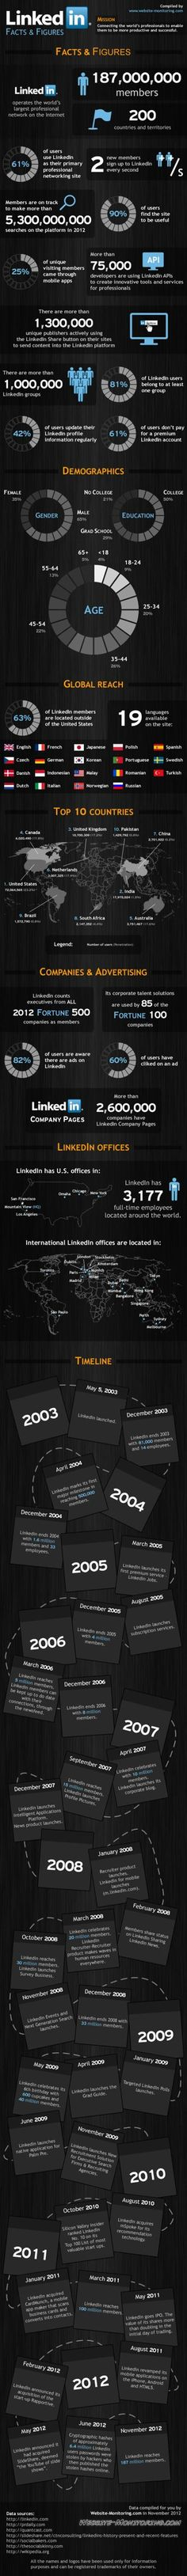 Expanding Your #LinkedIn Profile In the most Professional Way (Infographic)